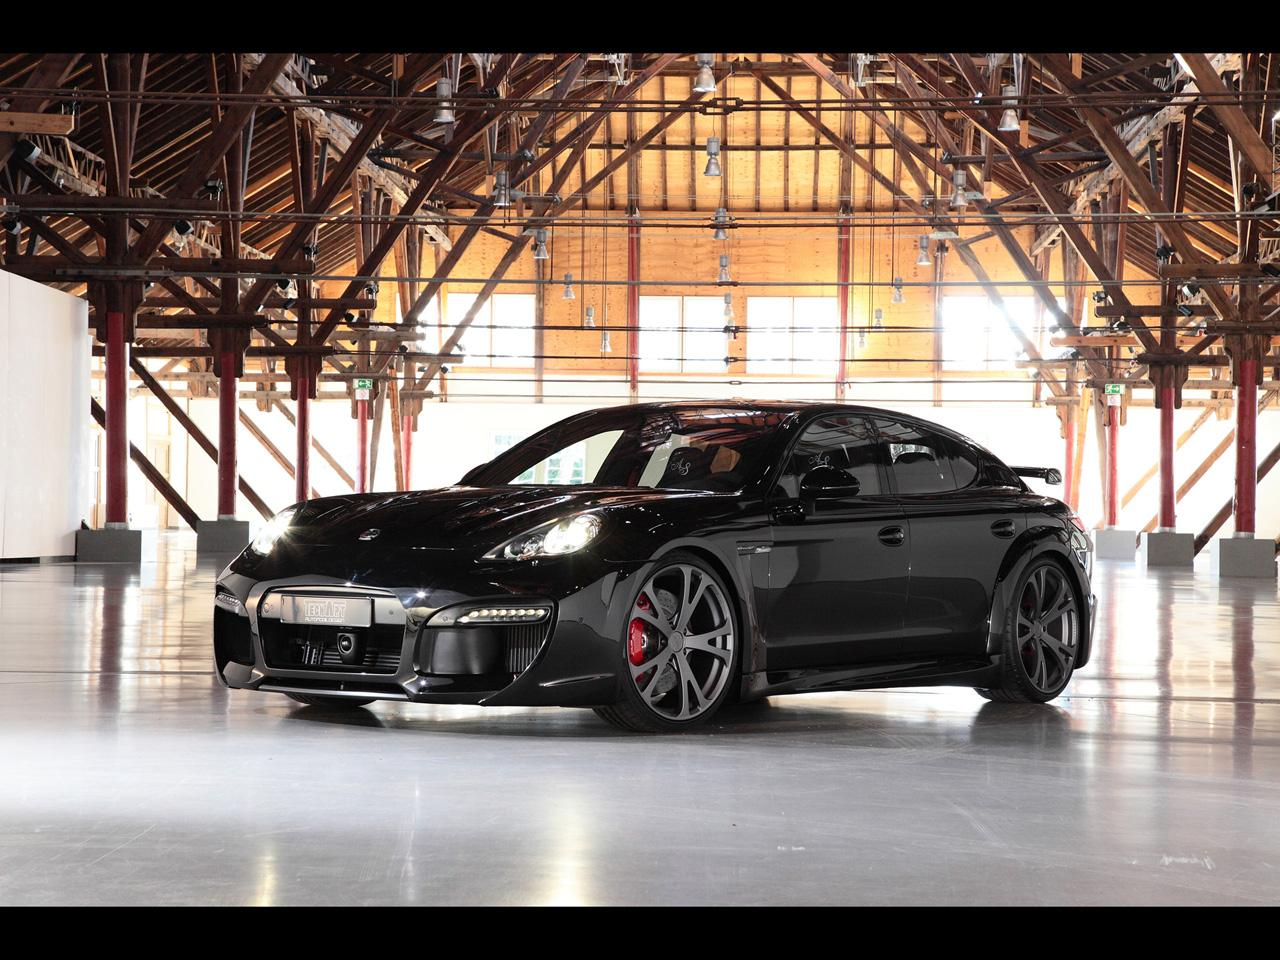 2011 Techart Porsche Panamera Grand GT Carbon kit